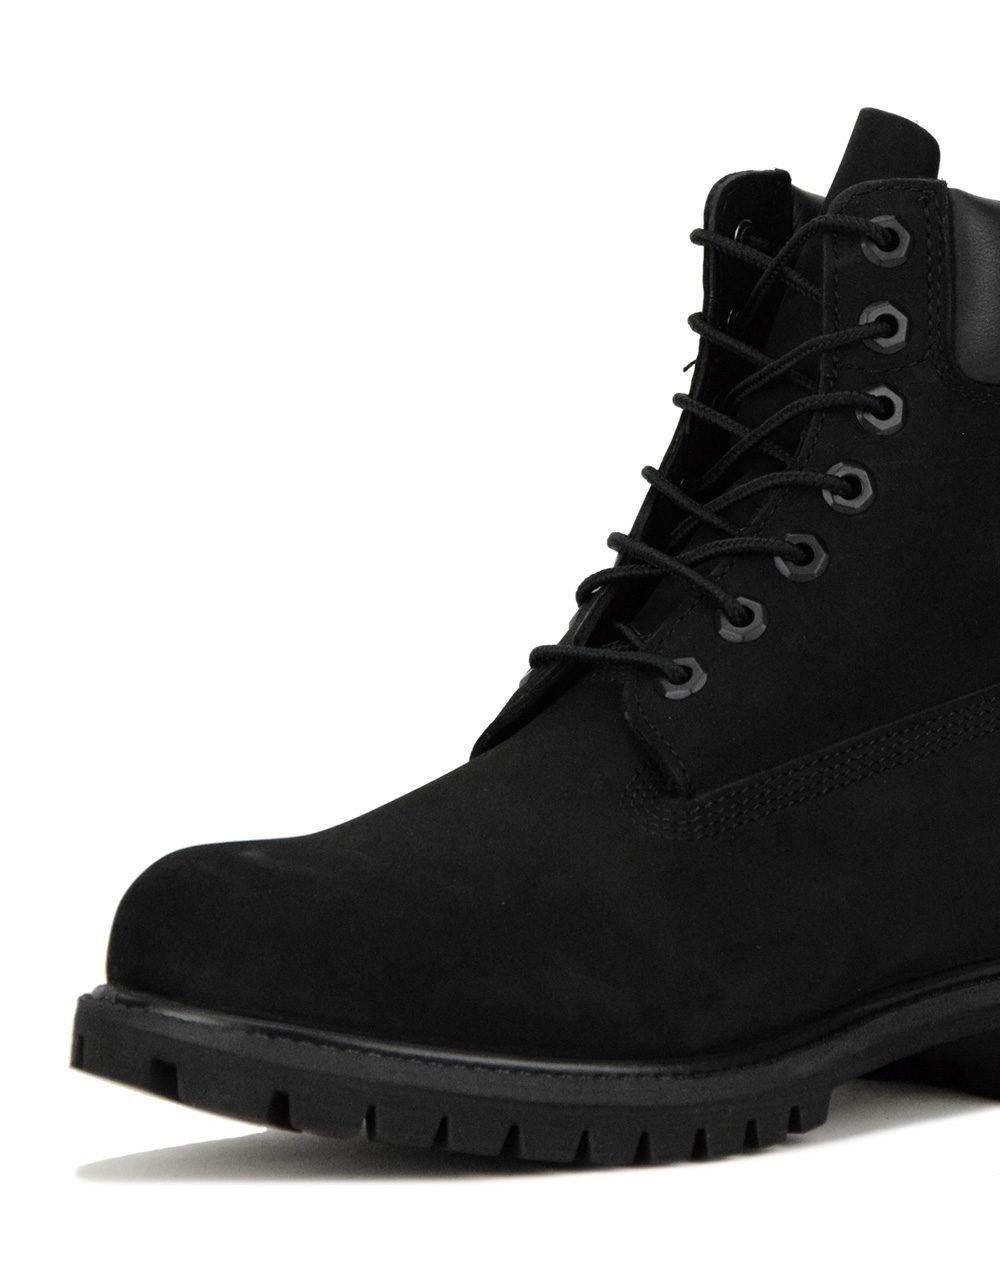 Timberland Premium 6 In Waterproof Boot (TB010073 001) Black Nubuck